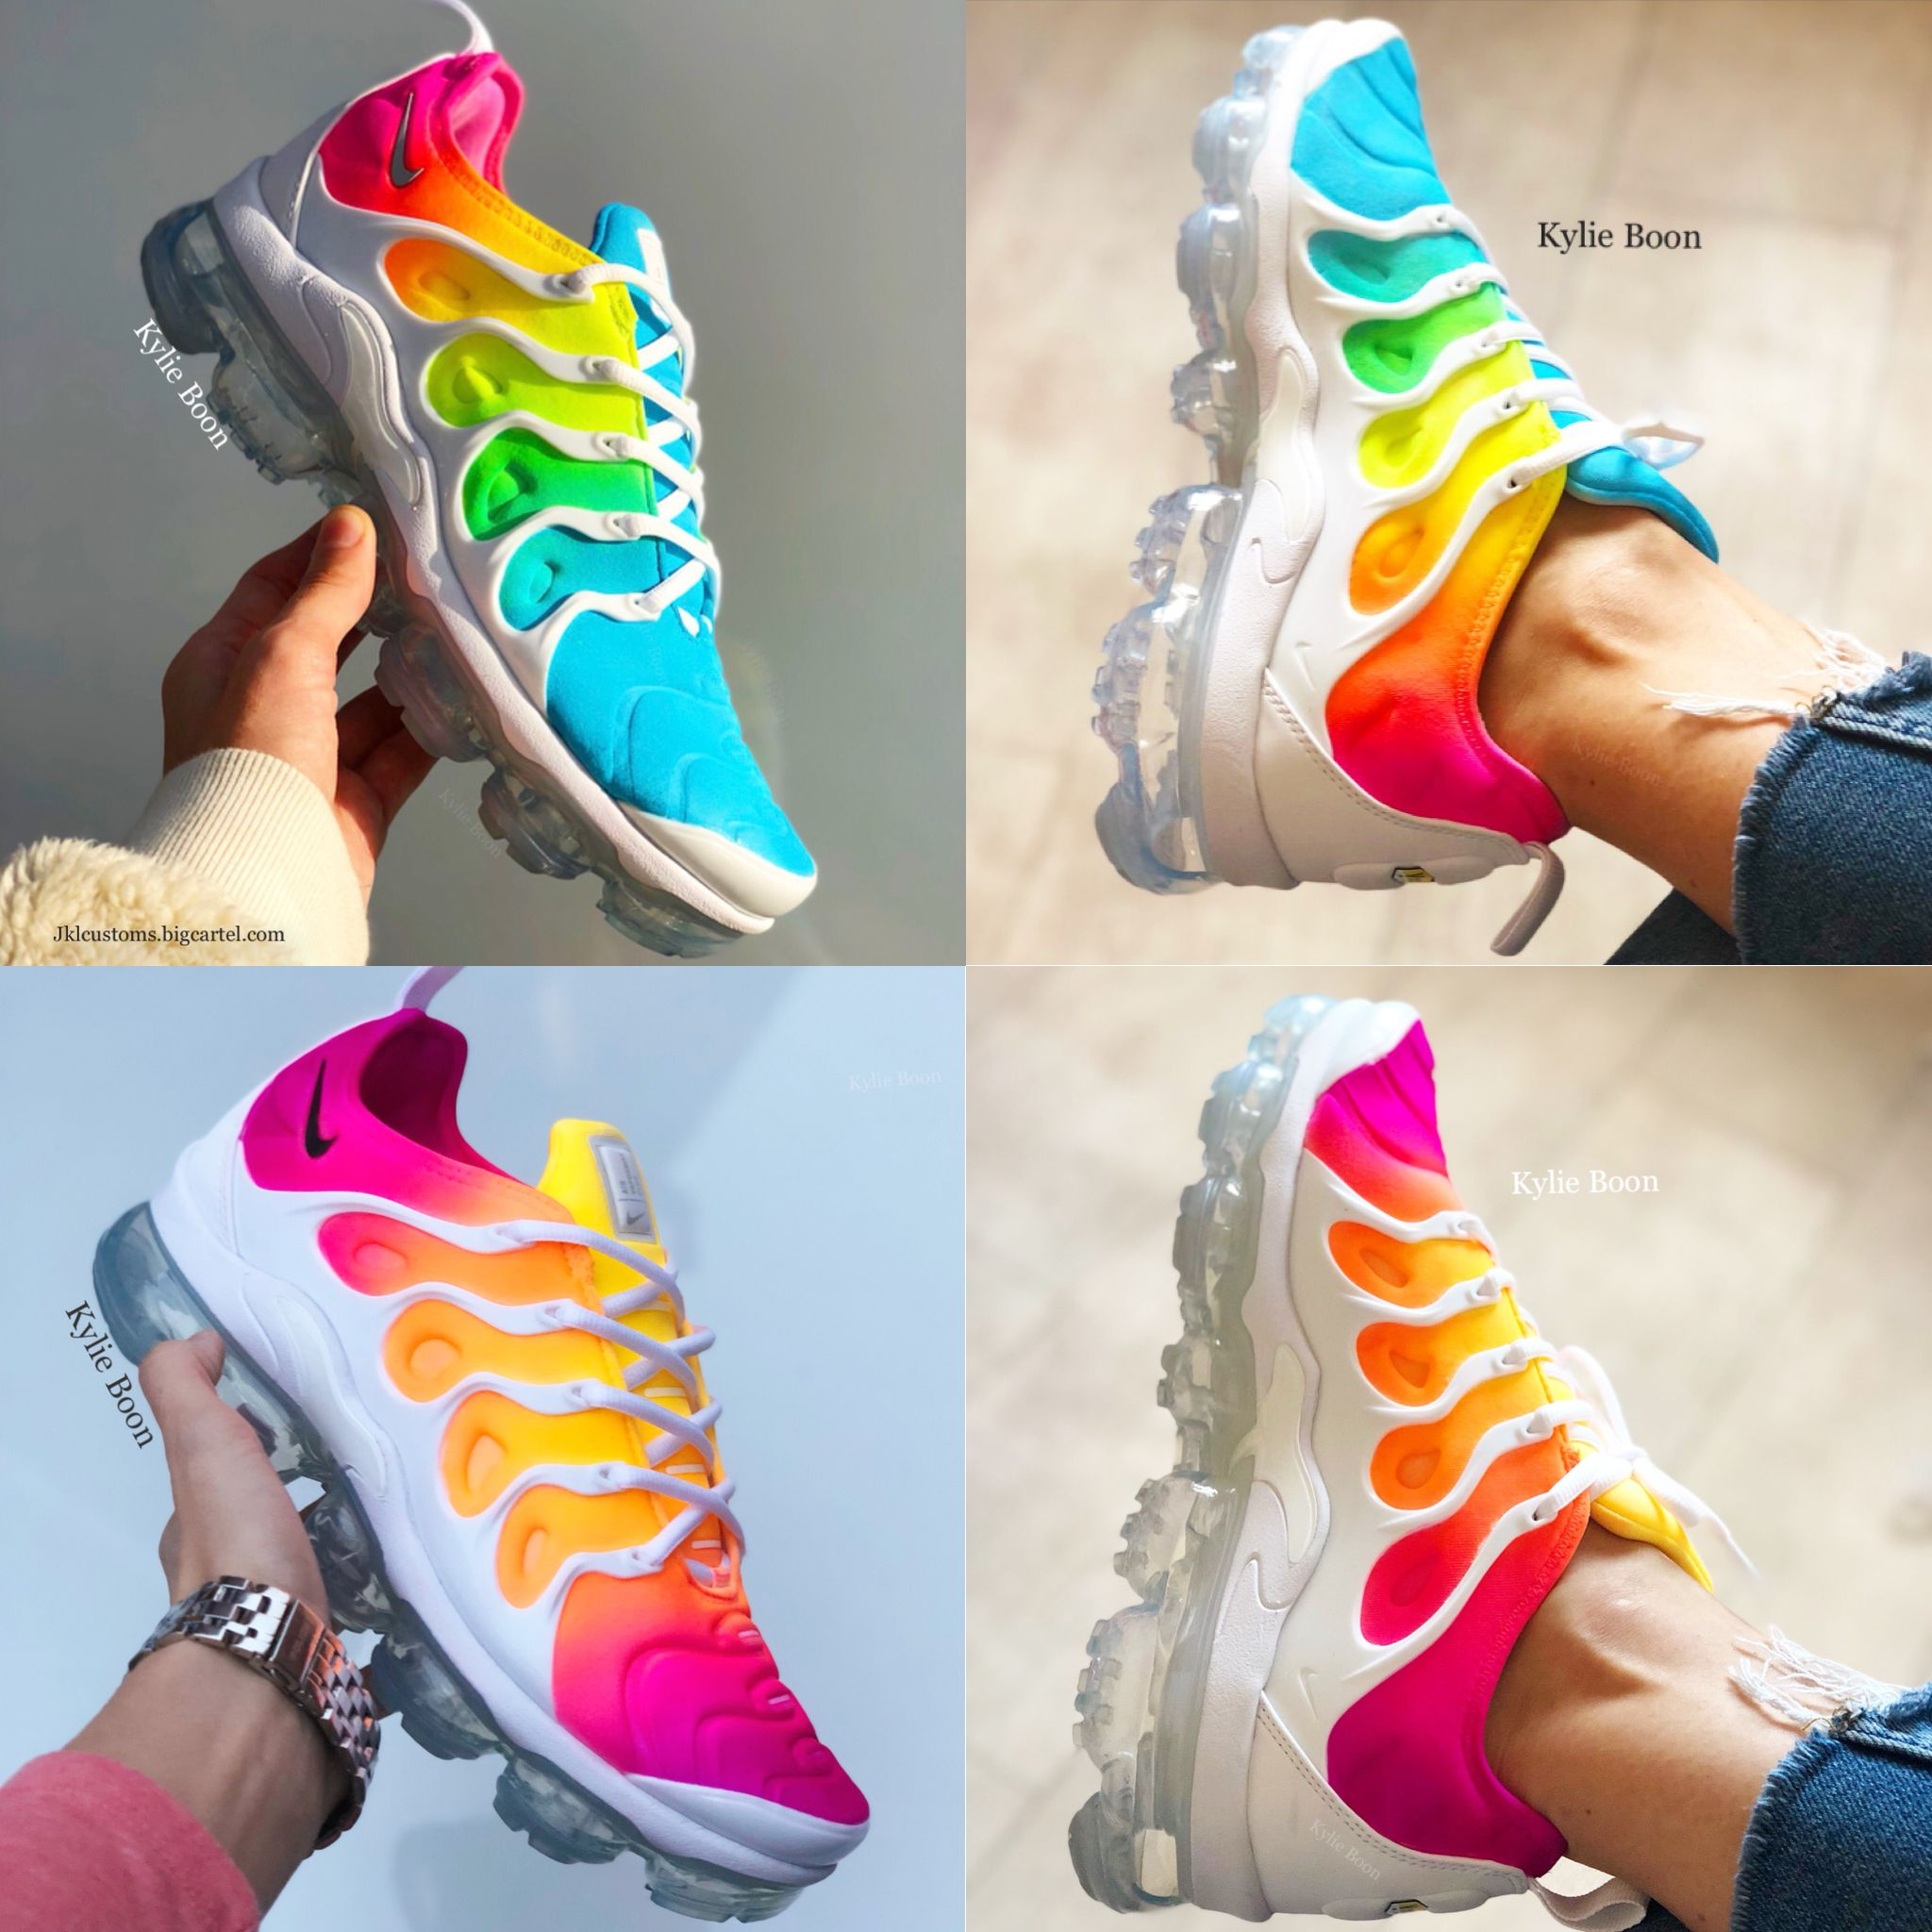 the best attitude 14e75 2b76f Vapormaxplus custom by myself Kylie boon  jklcustoms.bigcartel.com